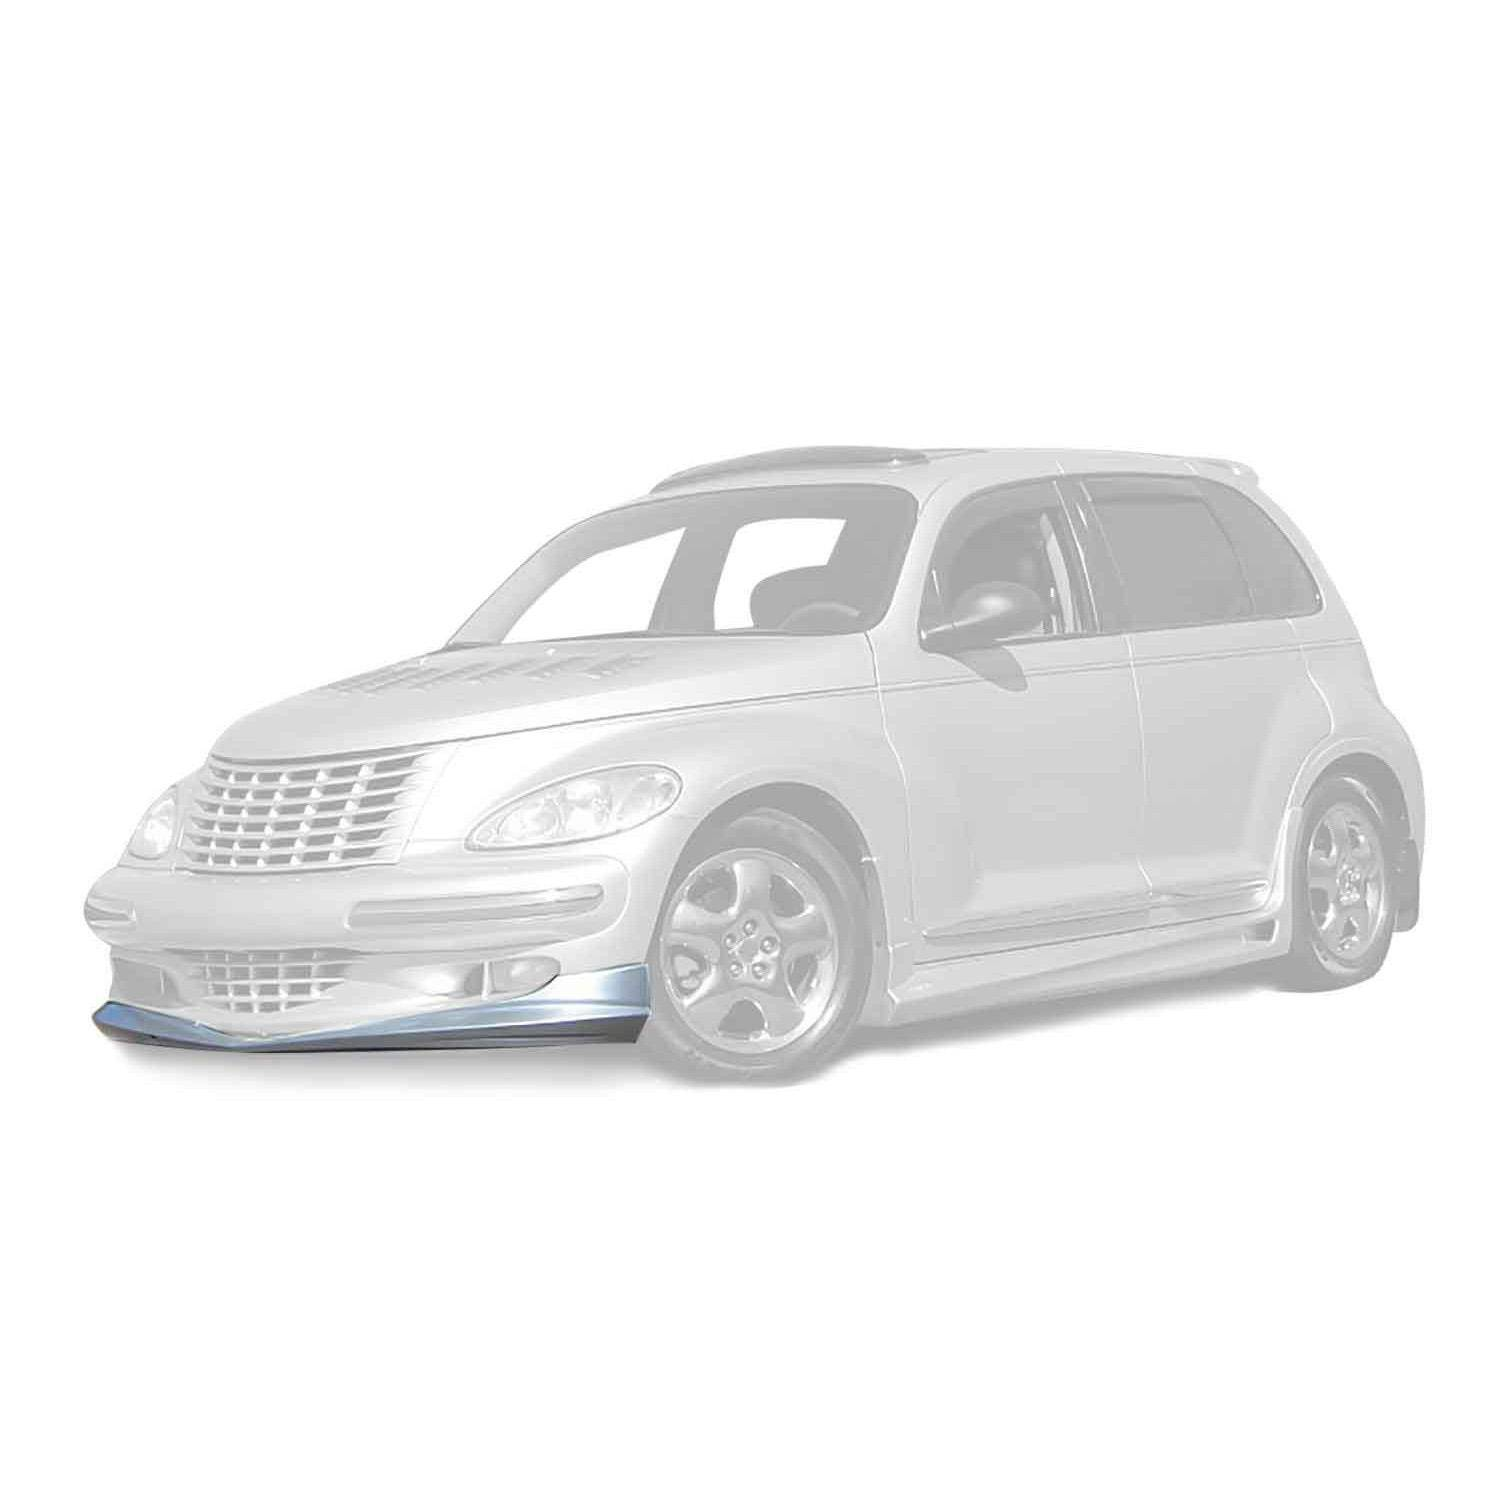 Chrysler PT Cruiser 2001-2005 Bomb Style 4 Piece Polyurethane Full Body Kit